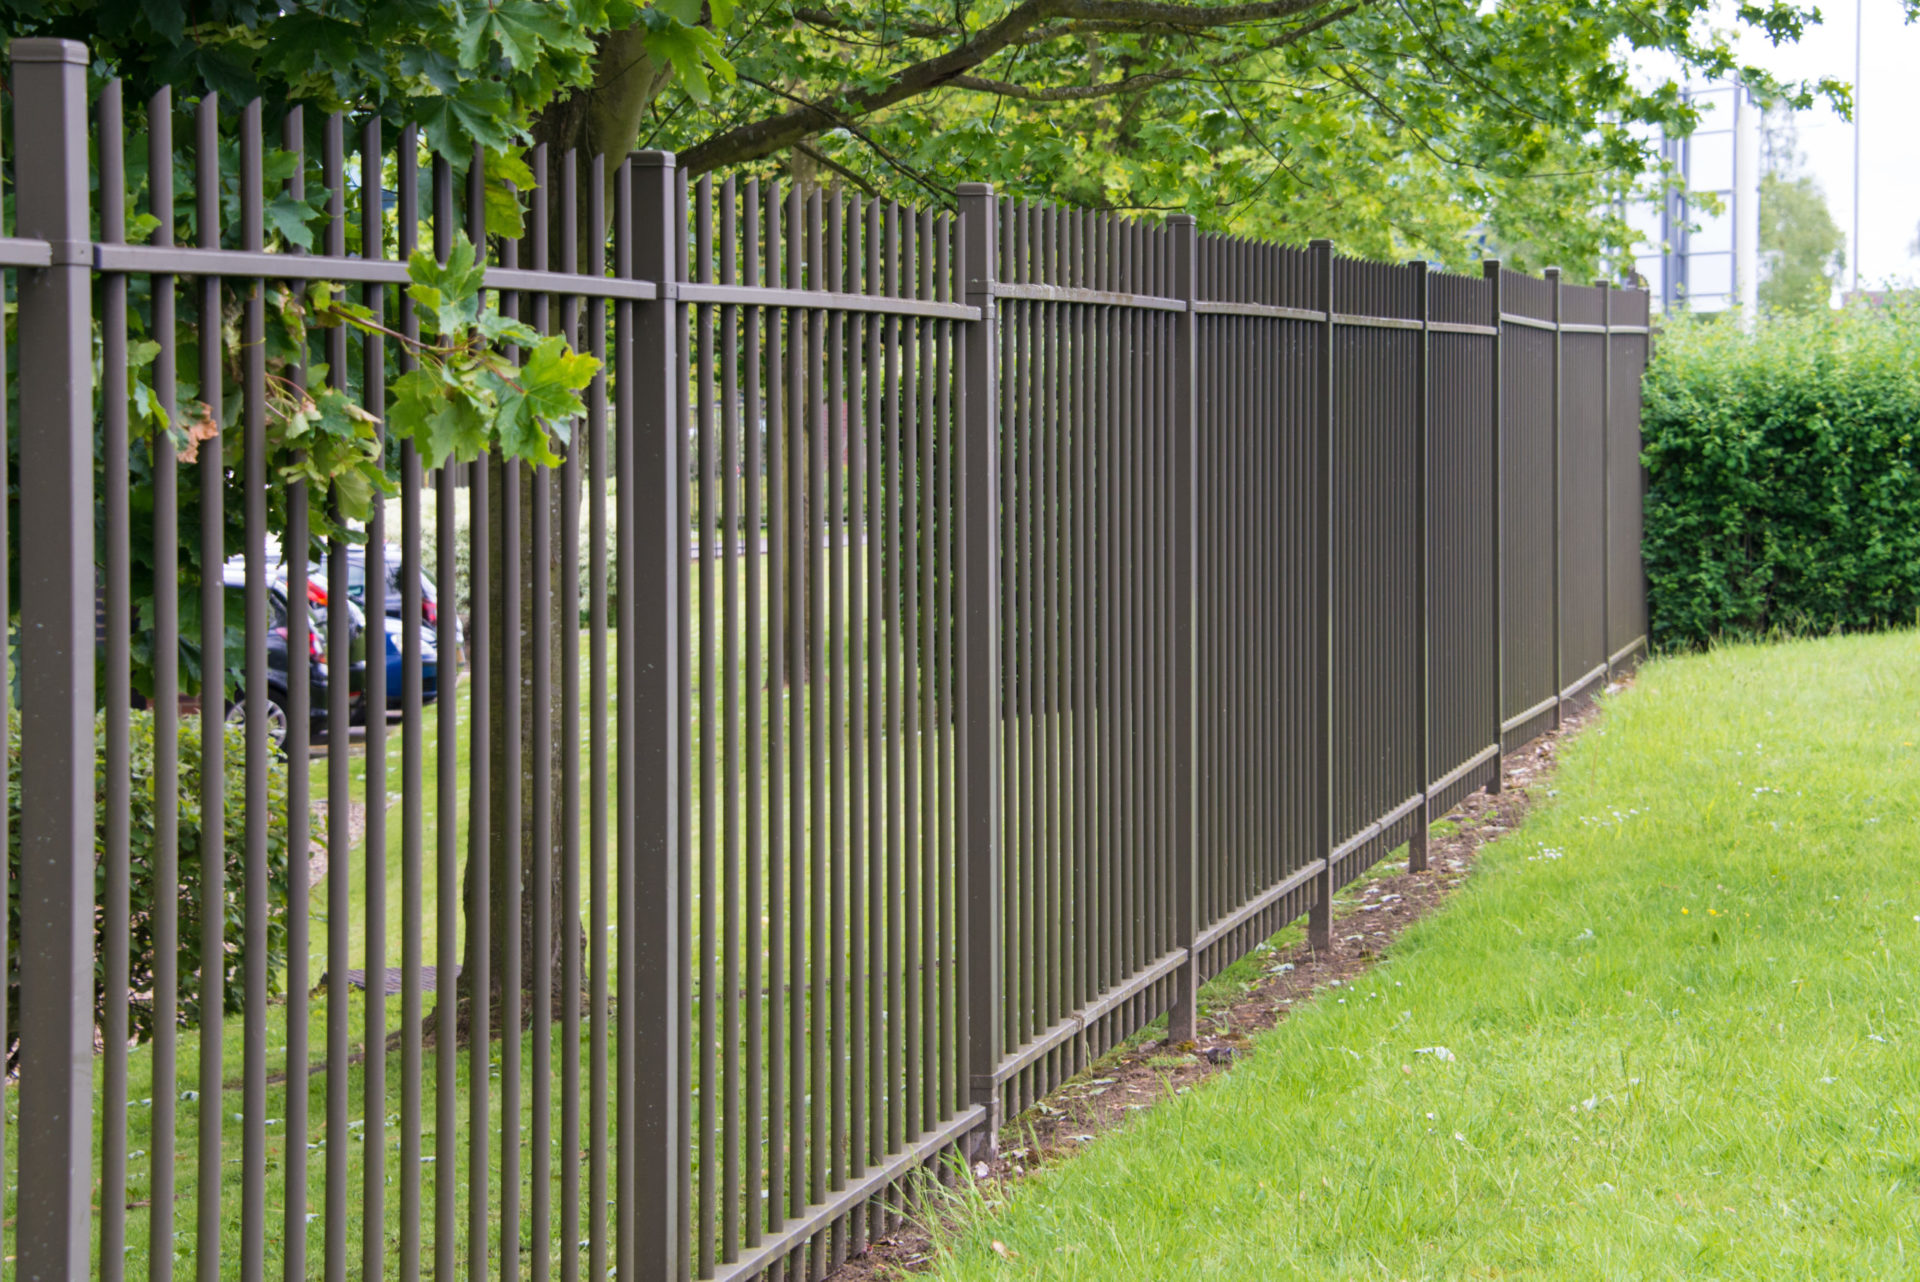 iron fence in a grass area